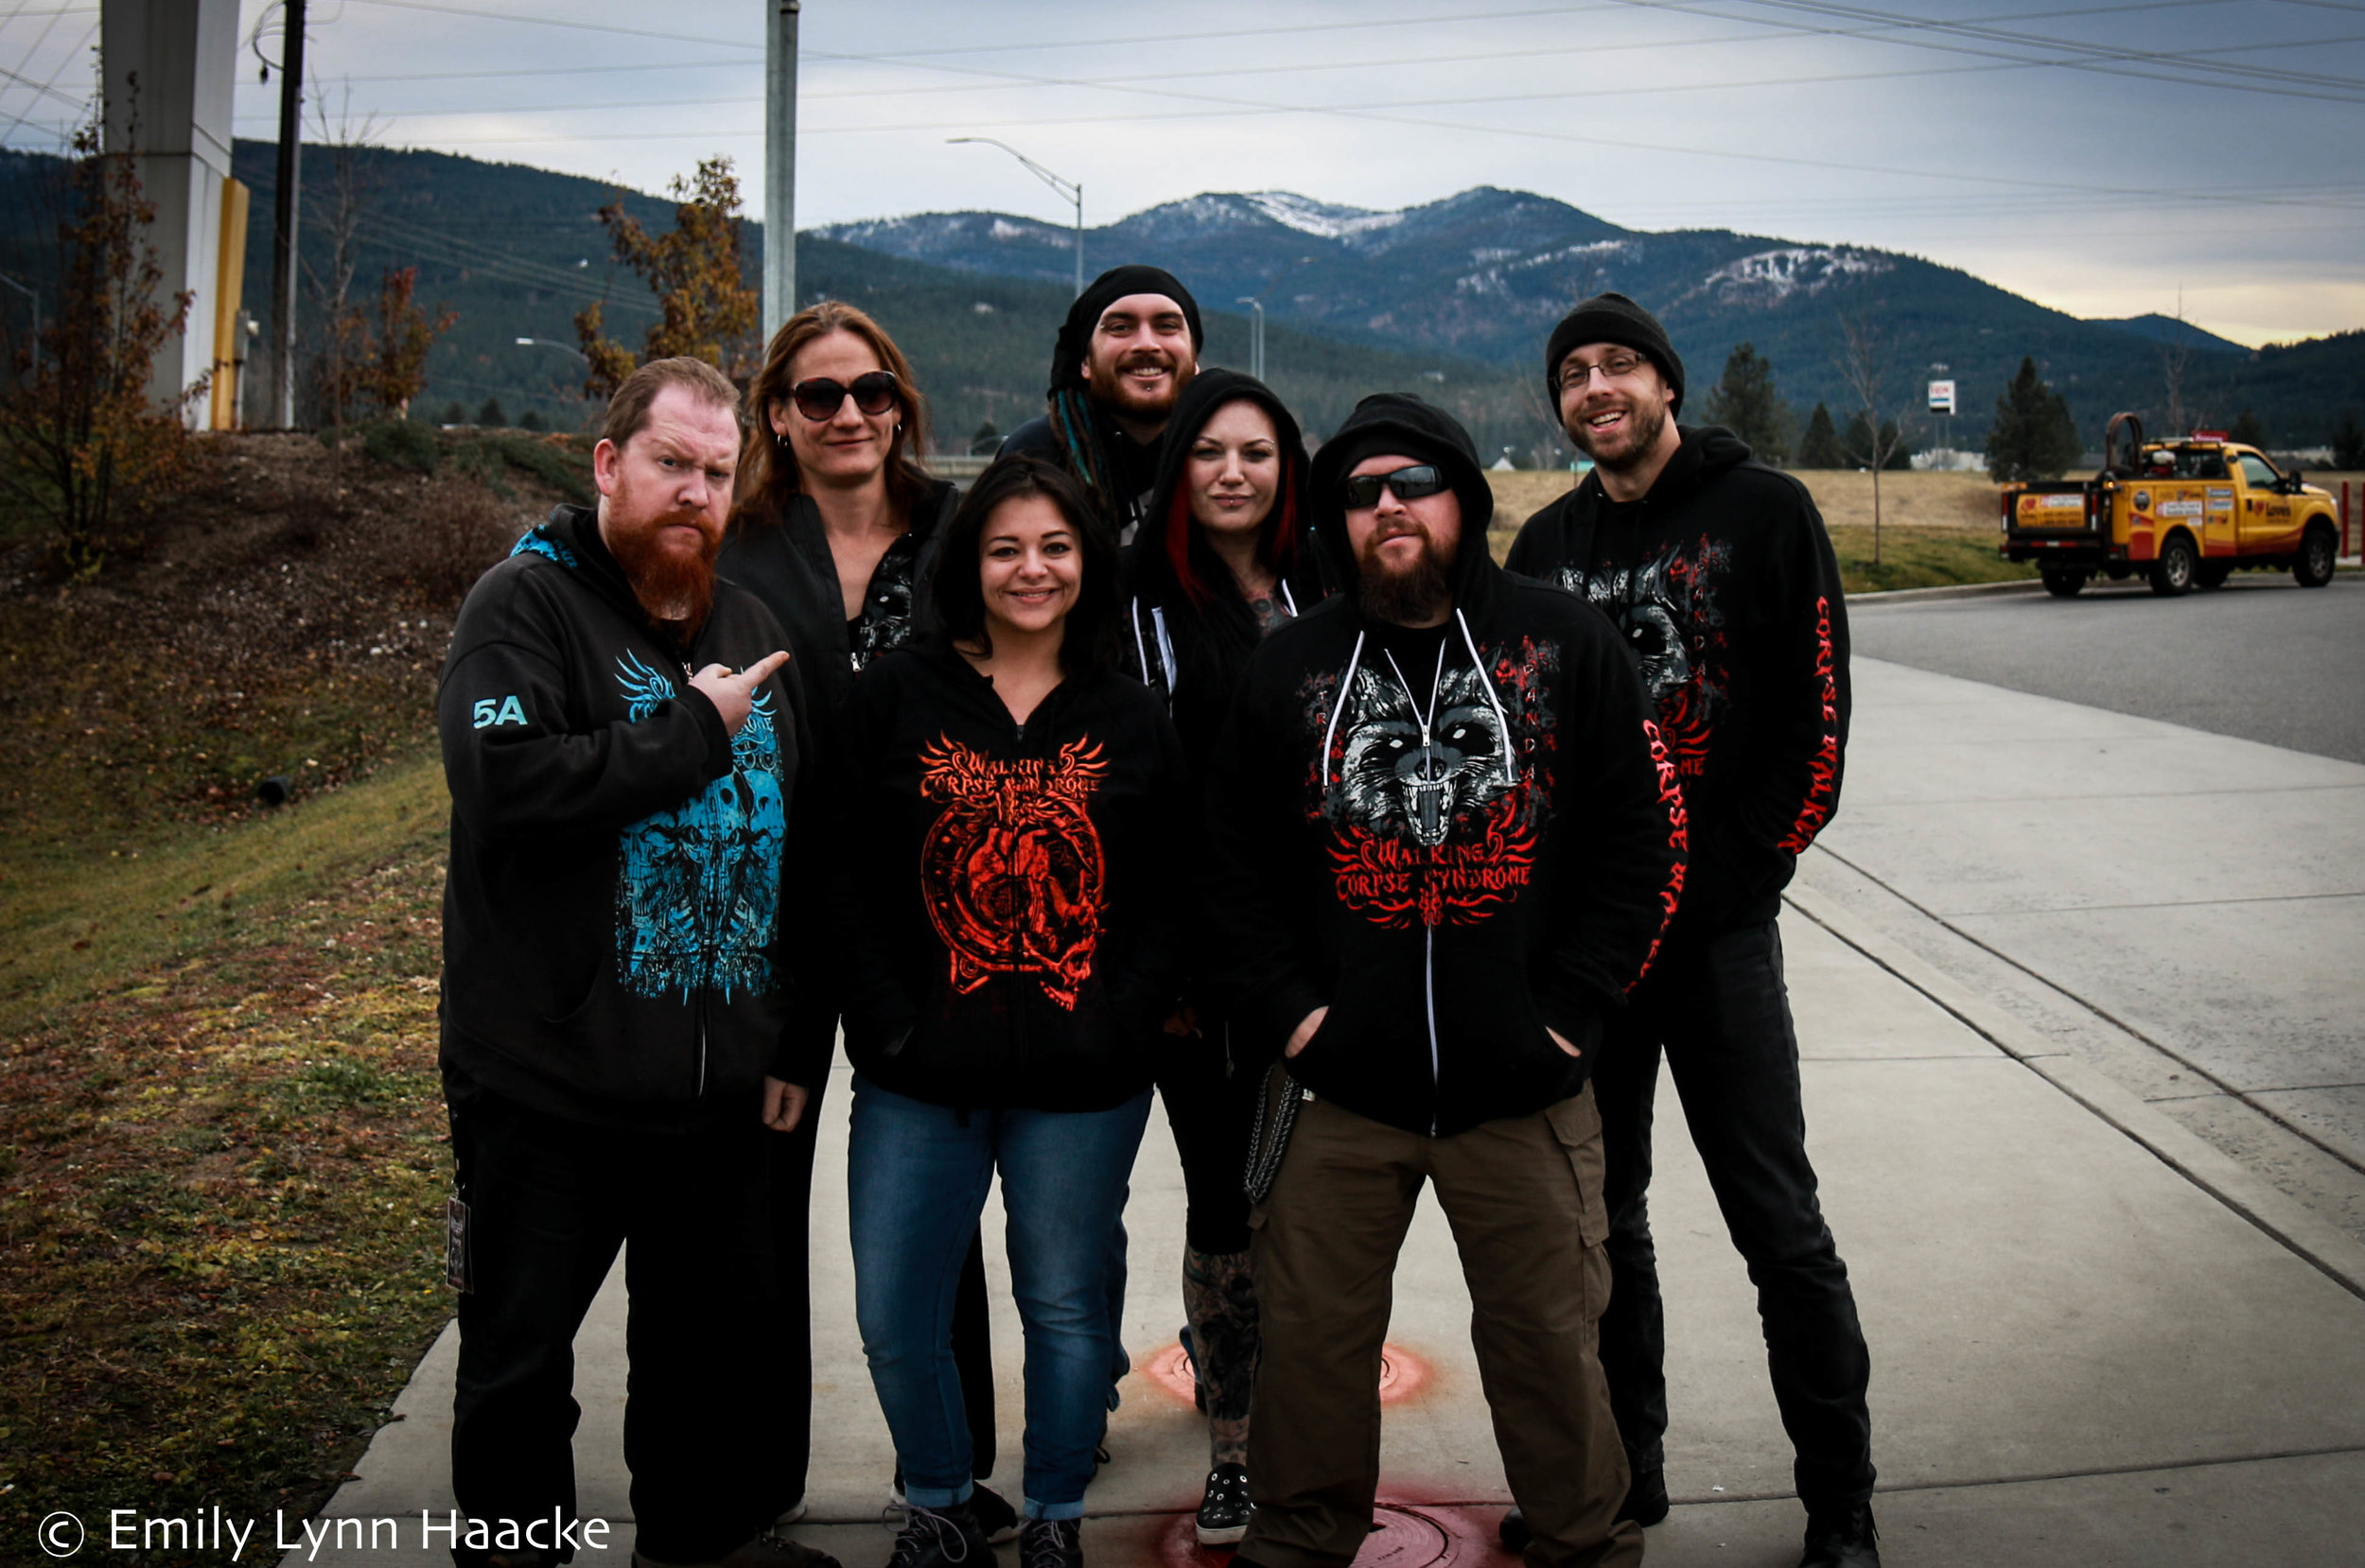 From left: Nocktis, Tana Starkey, Emily Lynn Haacke, Leif Winterrowd, Billie Flatt, Mr. Grimm, Matthew Bile